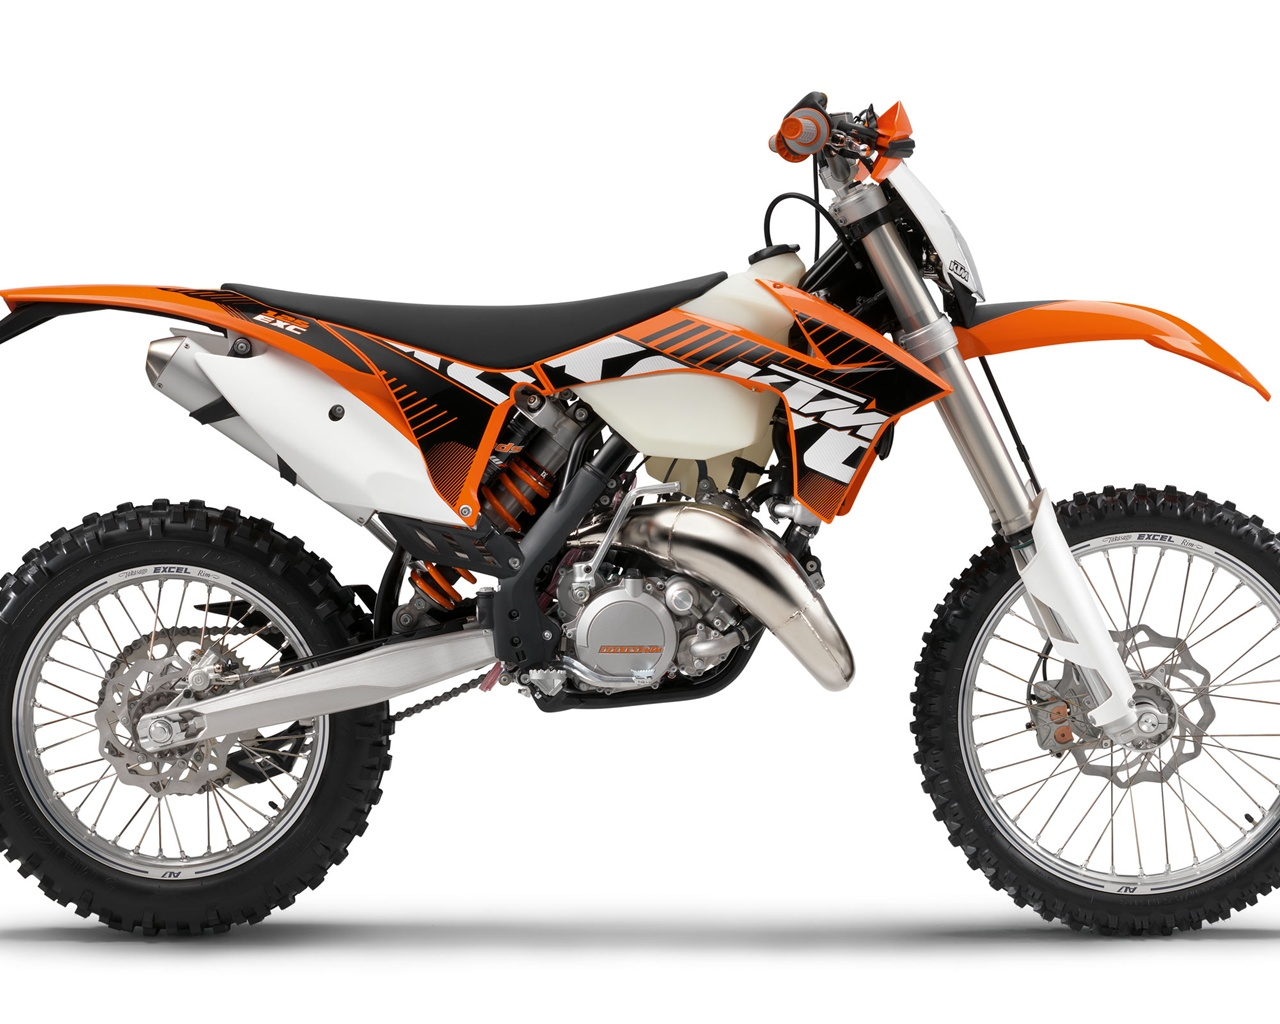 download wallpaper 1280x1024 ktm offroad 125 exc motorcycle 2012 hd background. Black Bedroom Furniture Sets. Home Design Ideas